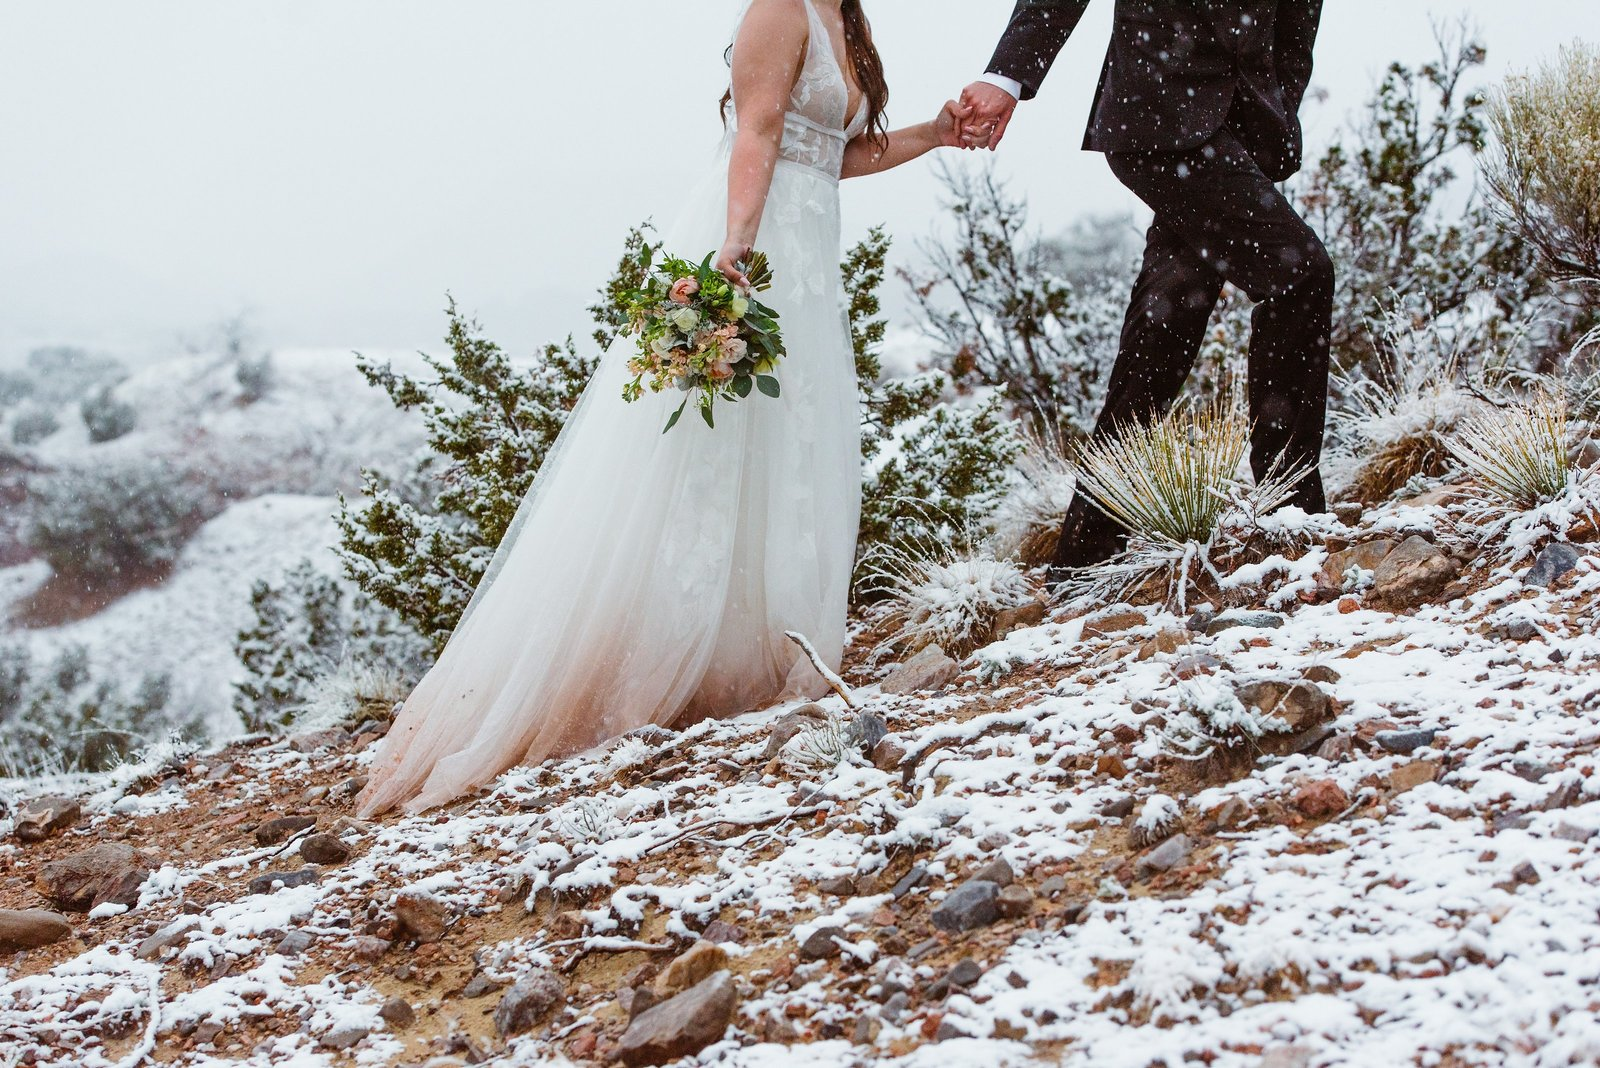 Hiking-Adventure-Elopement-Winter-Snow